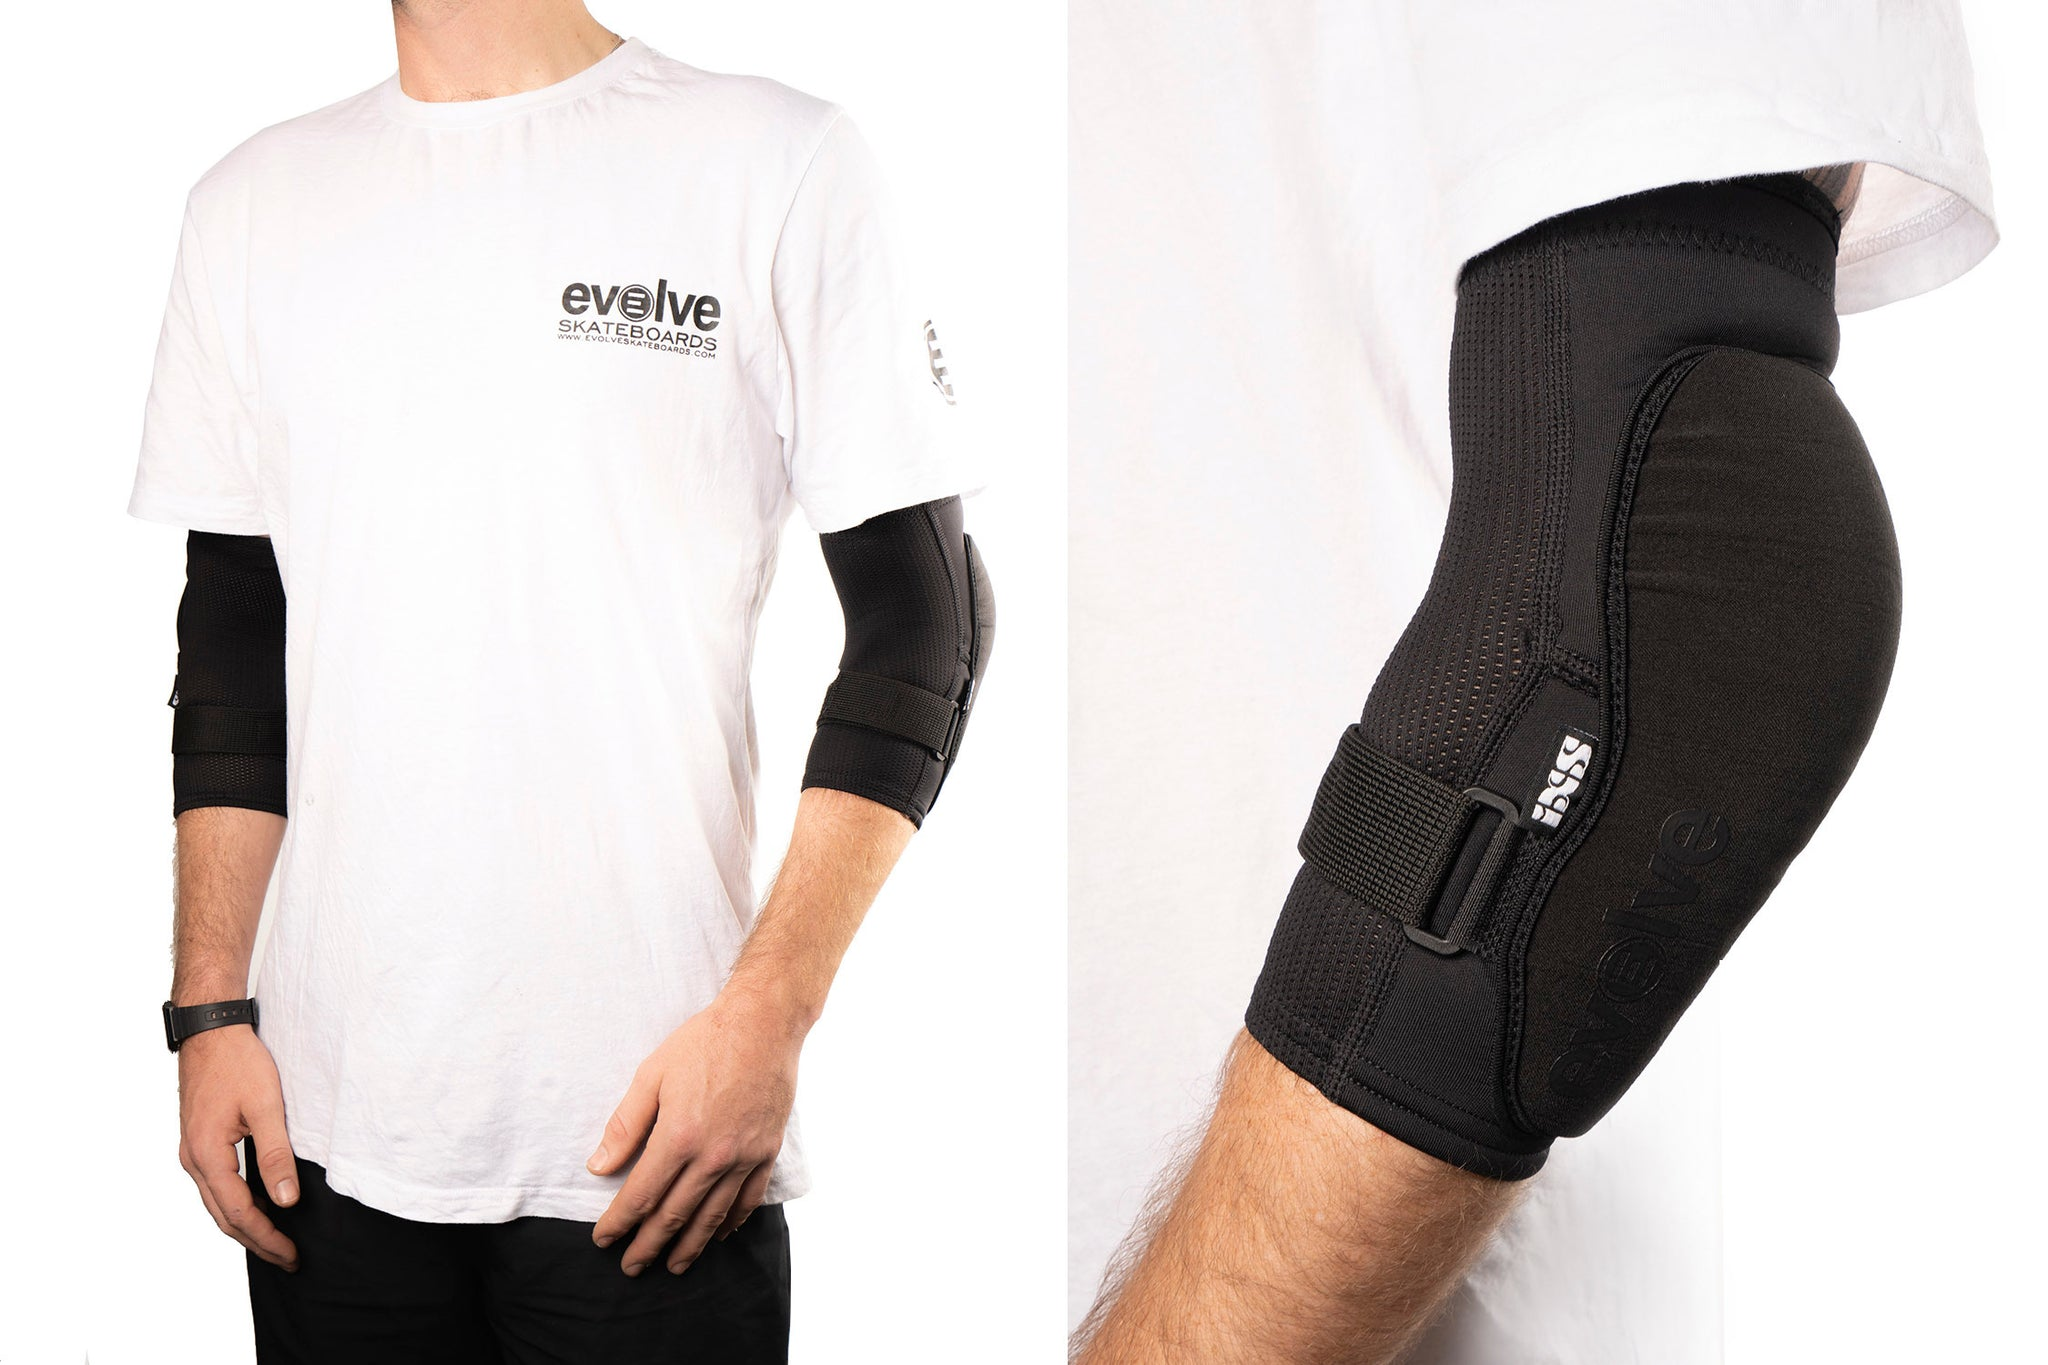 iXS Evolve Safety Guards